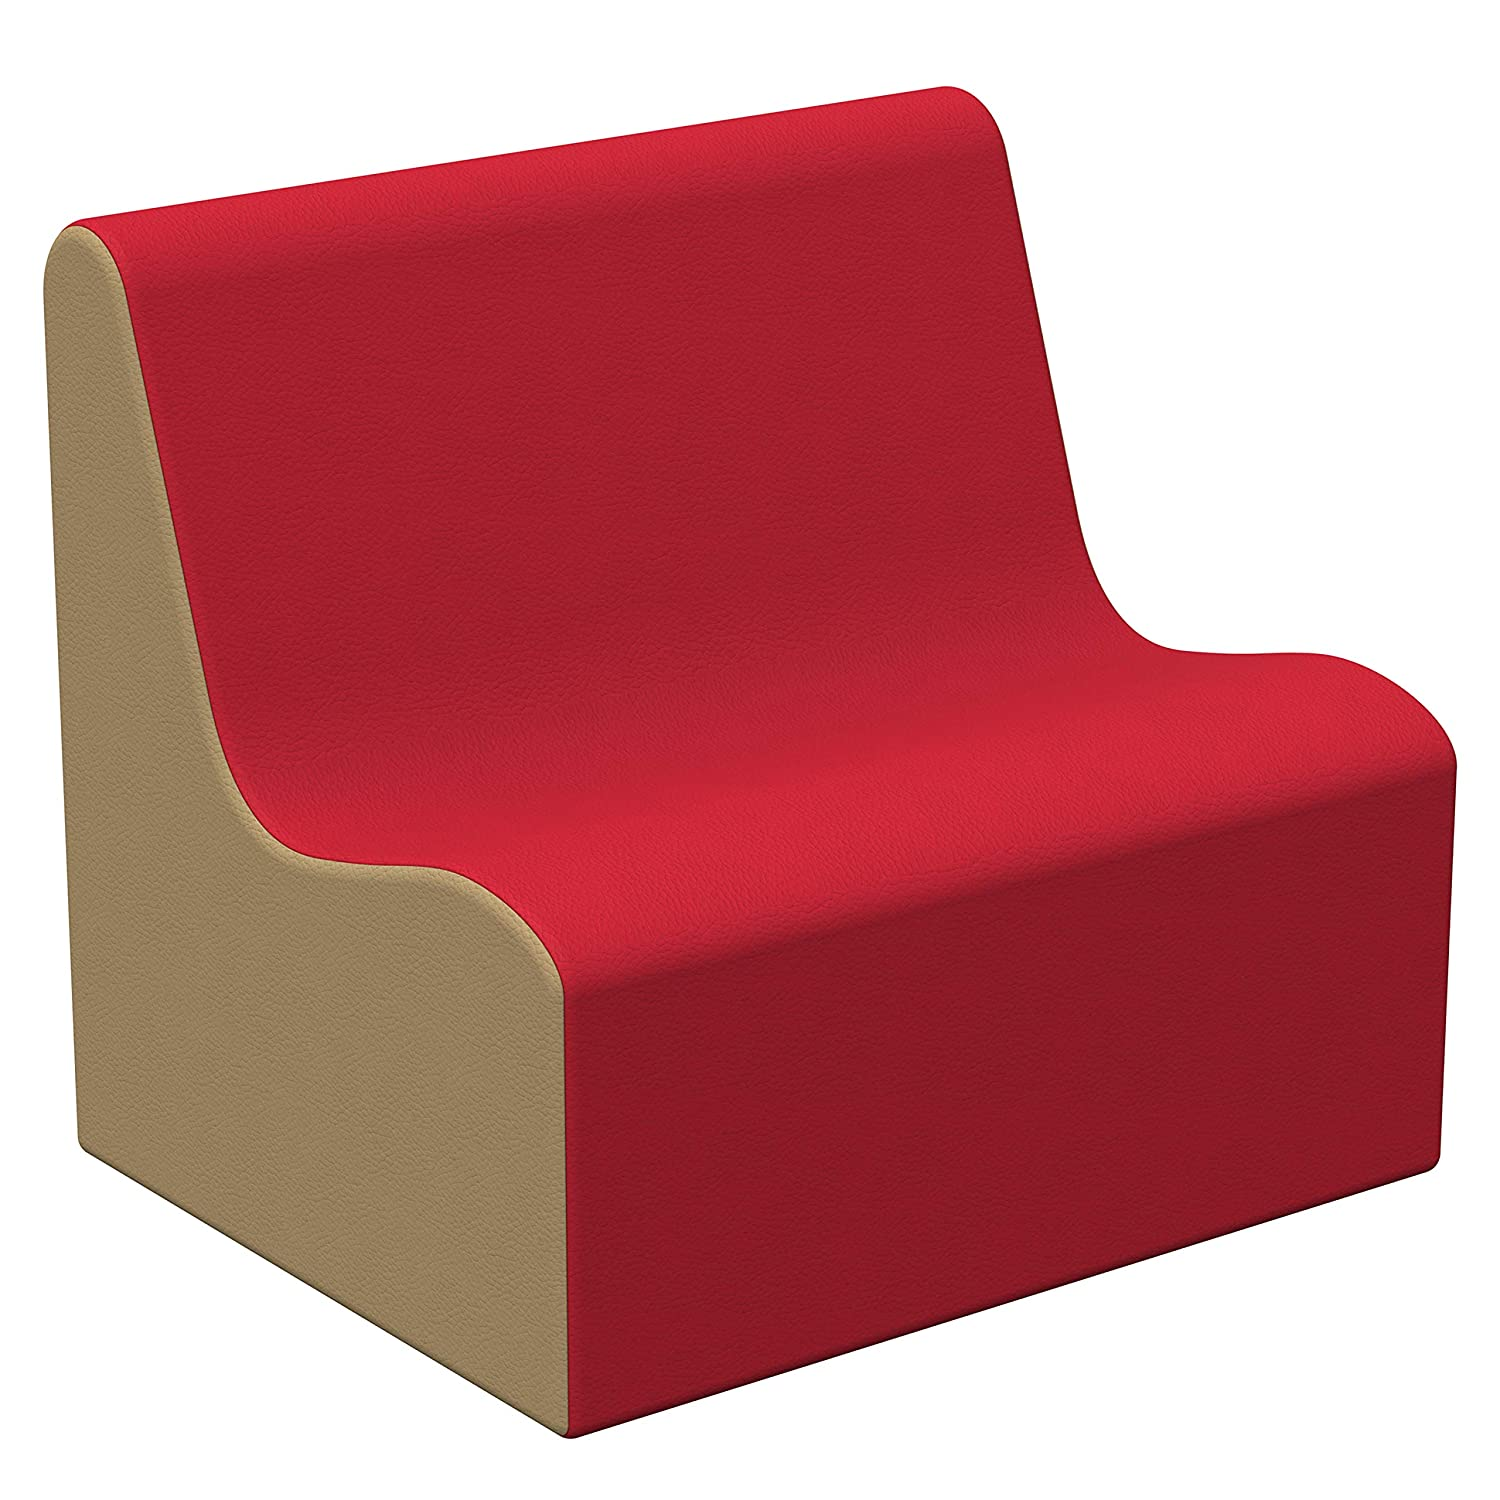 FDP SoftScape Wave Preschool Sofa Seating, Play Soft Supportive Foam Furniture for Kids for Bedrooms, Playrooms, Classrooms - Red/Sand